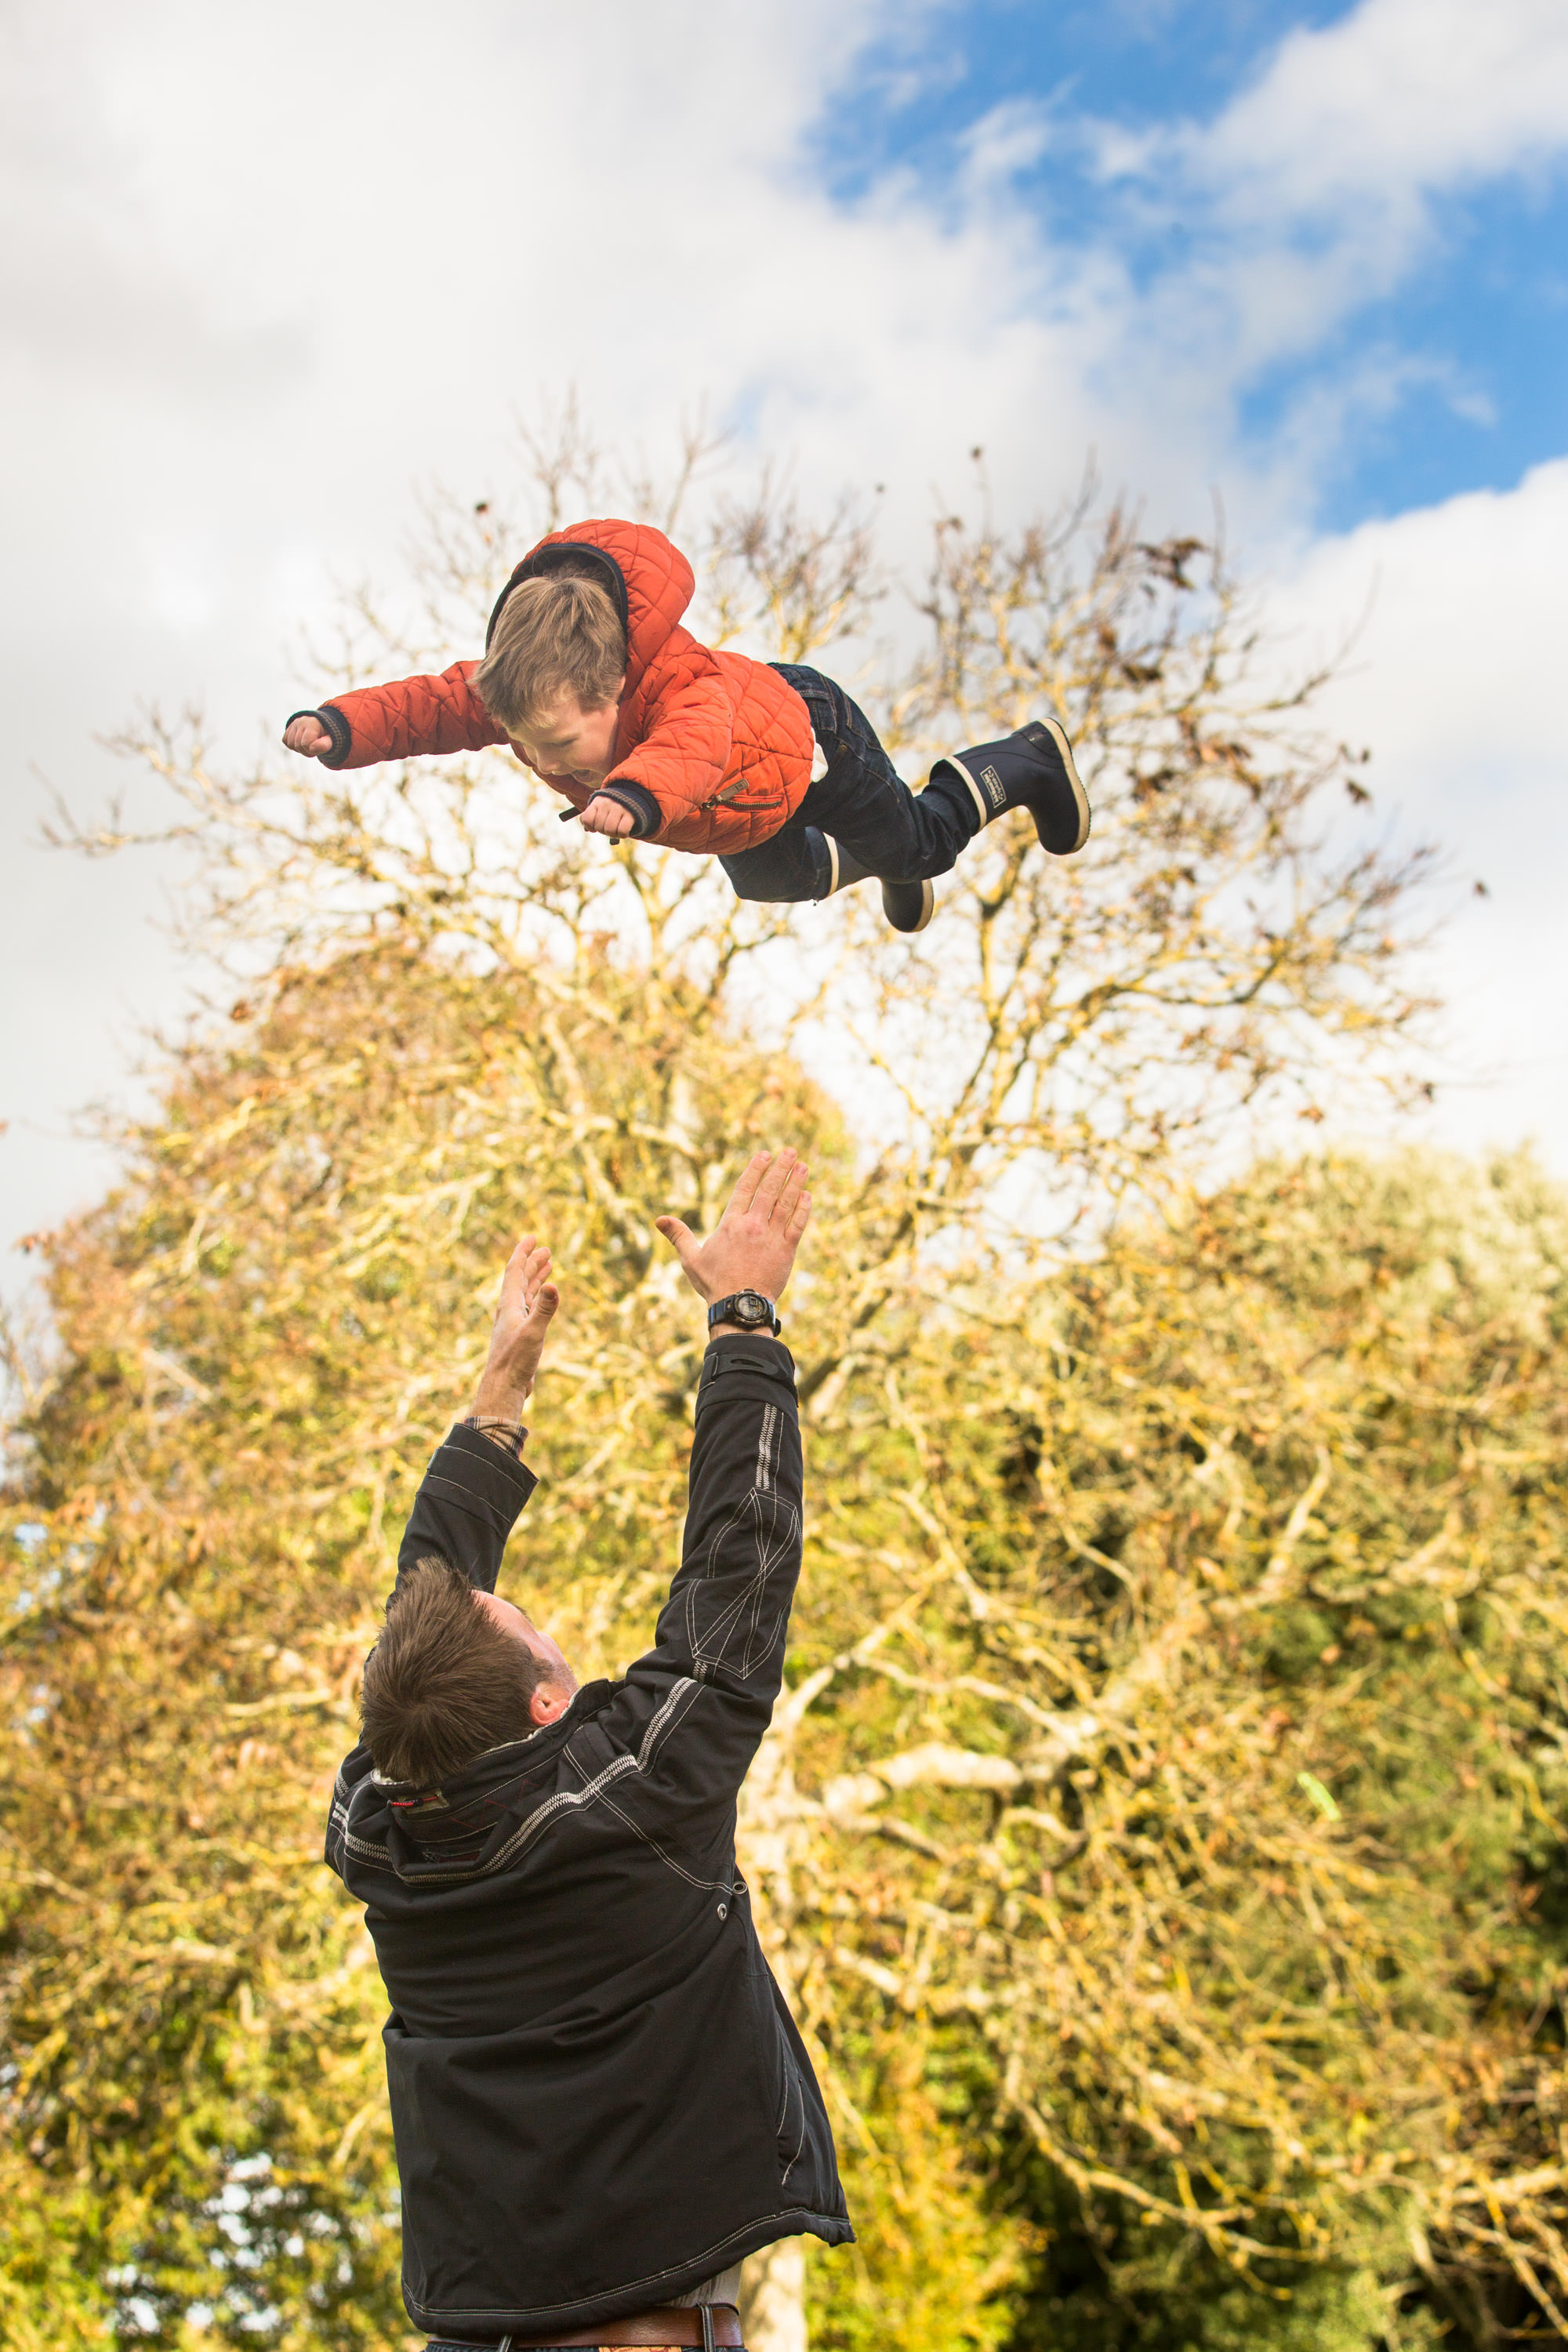 family photographer in Winchester - dad throwing toddler in the air